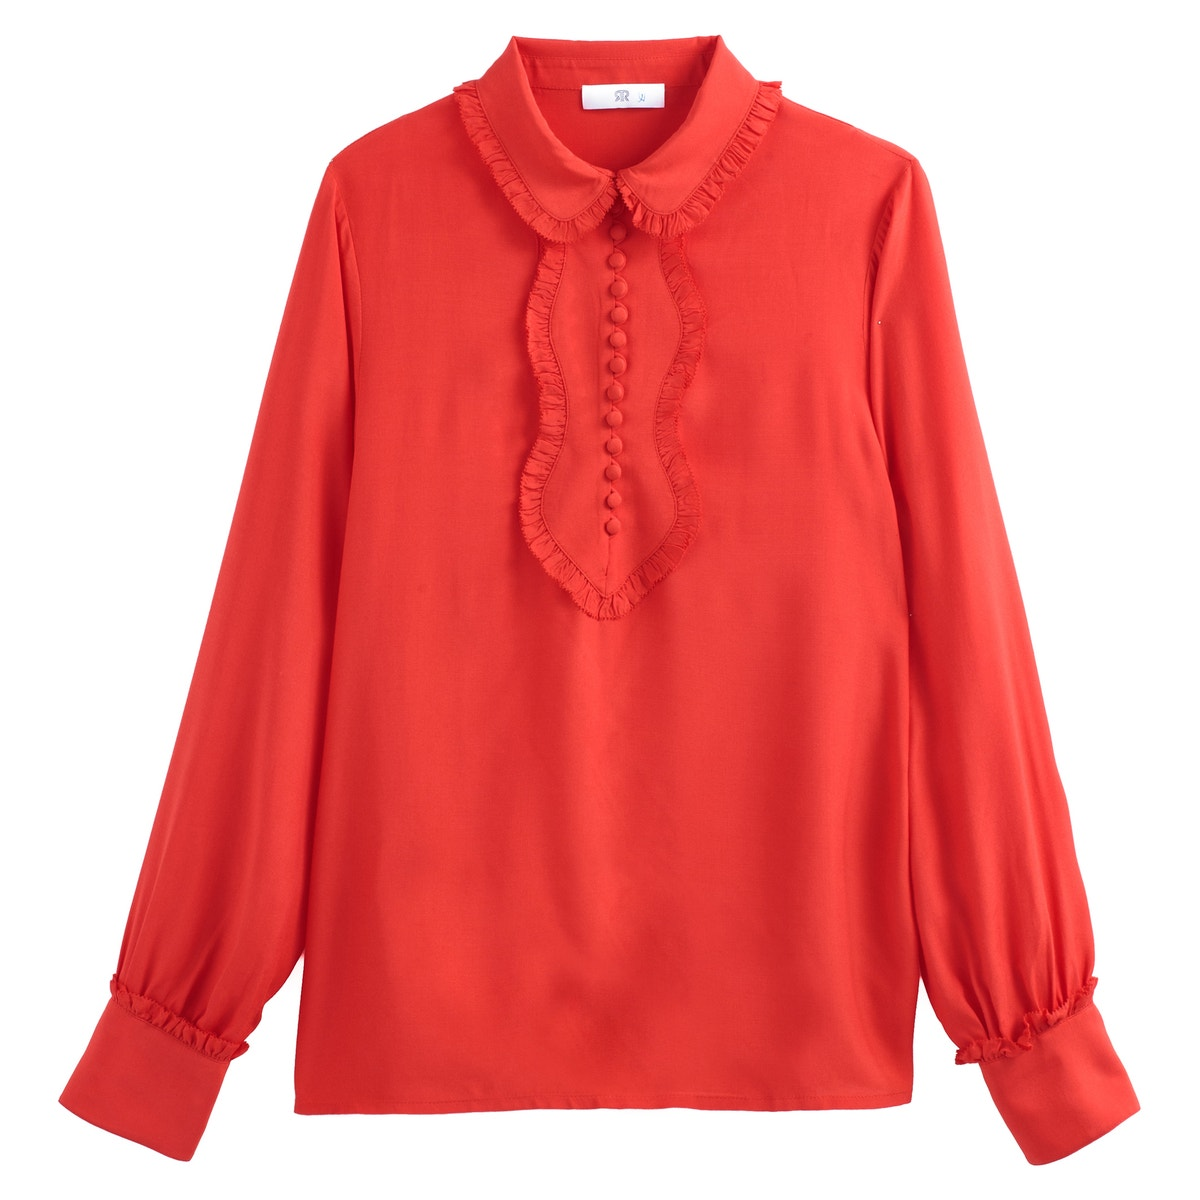 La rotoute Collections damen Ruffled Blouse